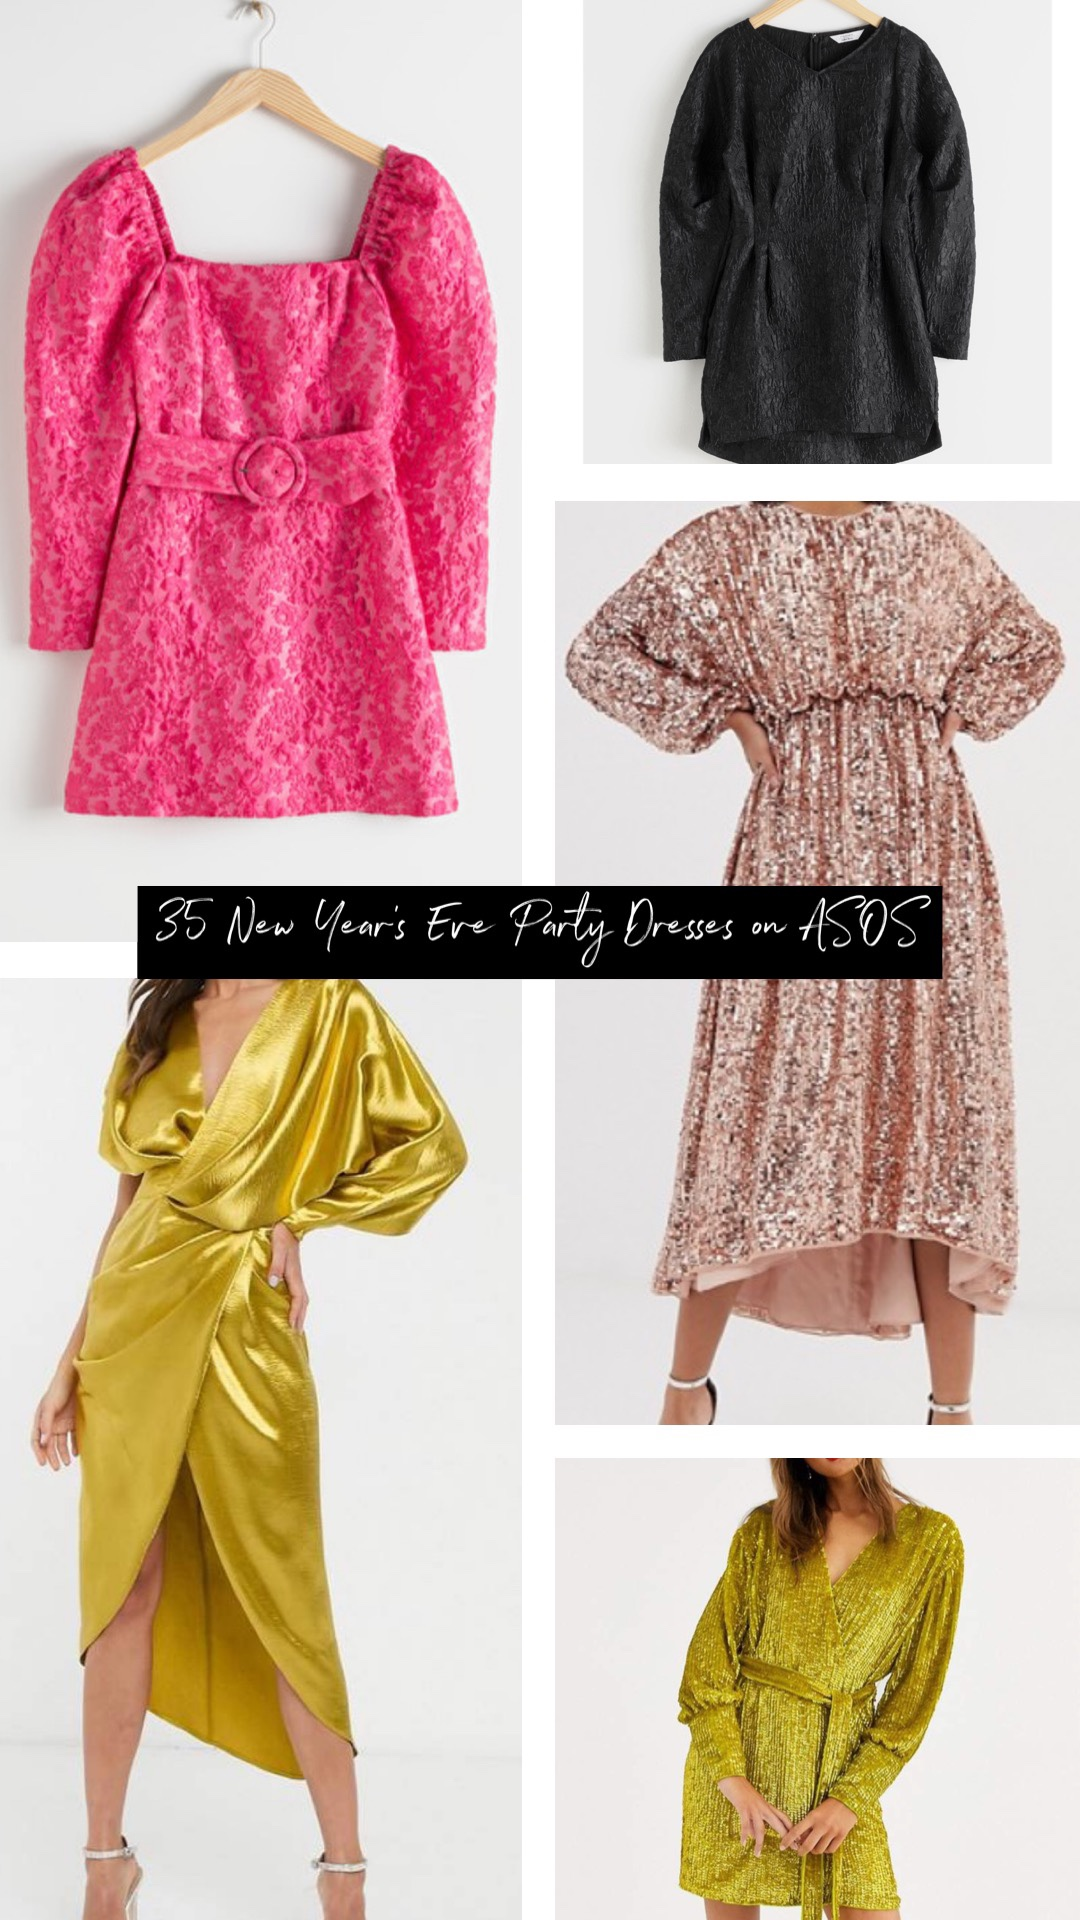 ASOS party dresses perfect for new years eve